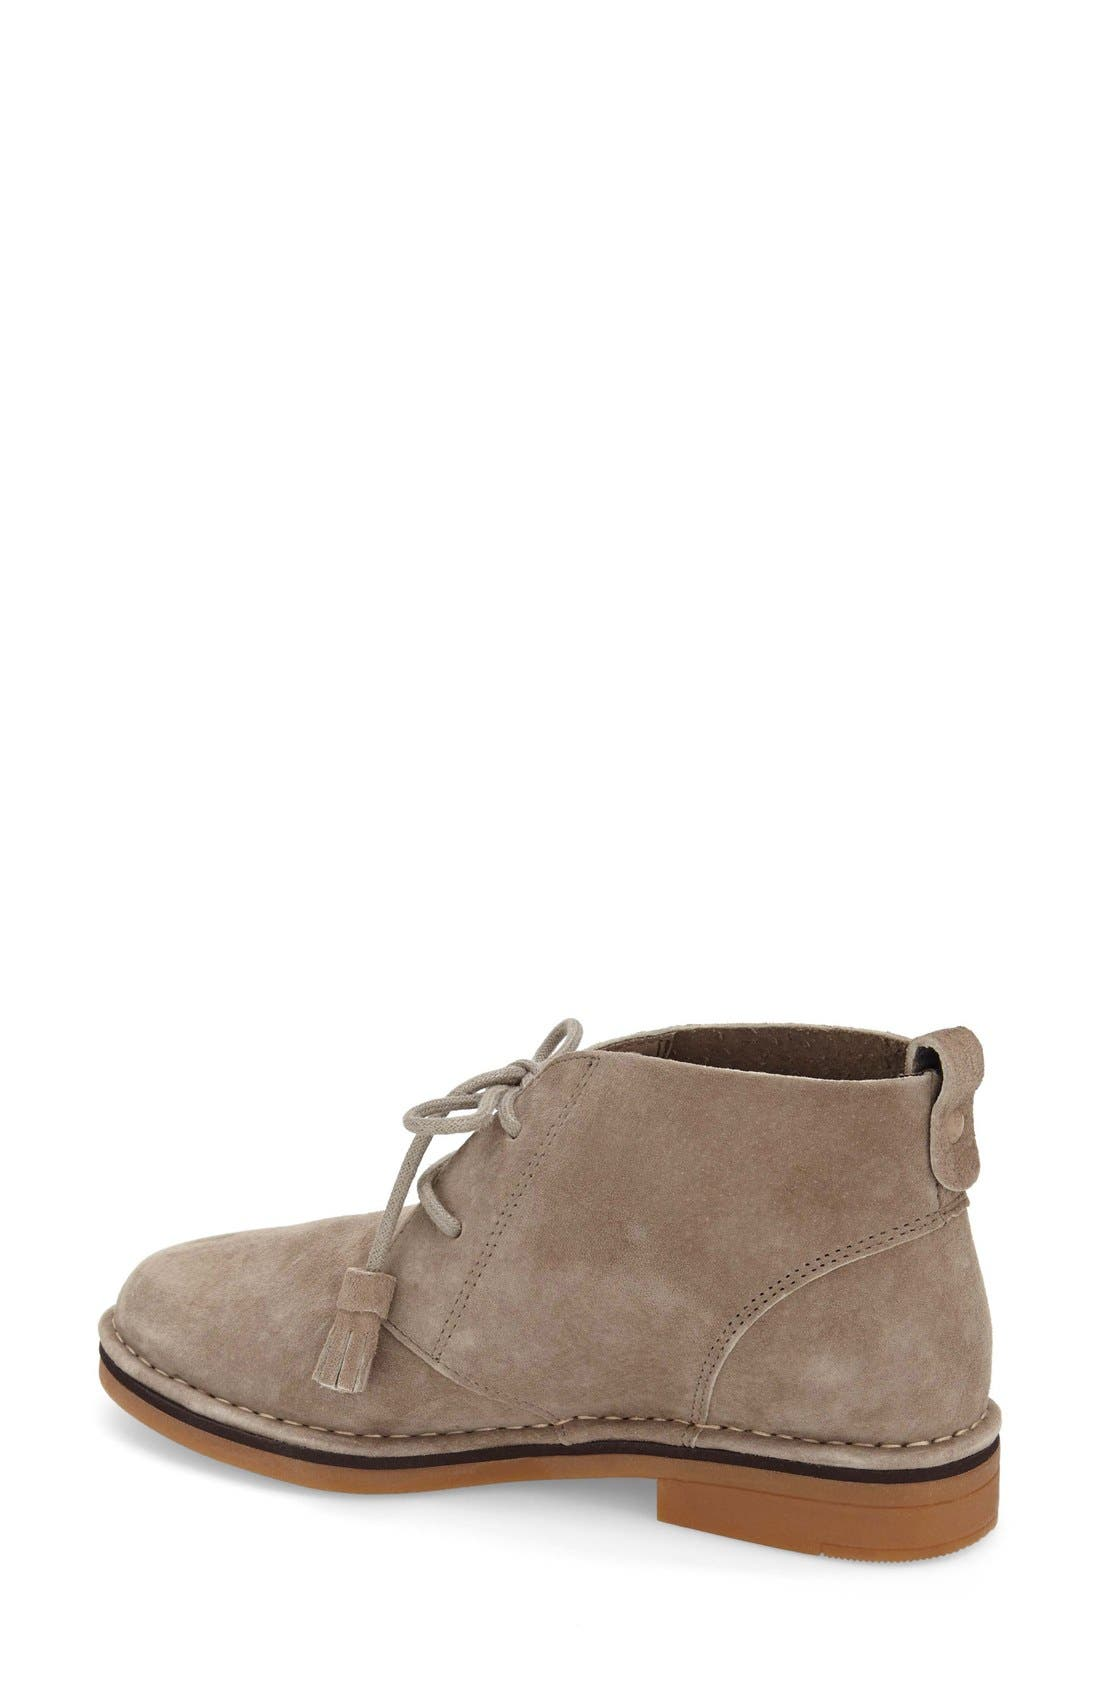 'Cyra Catelyn' Chukka Boot,                             Alternate thumbnail 2, color,                             Taupe Suede